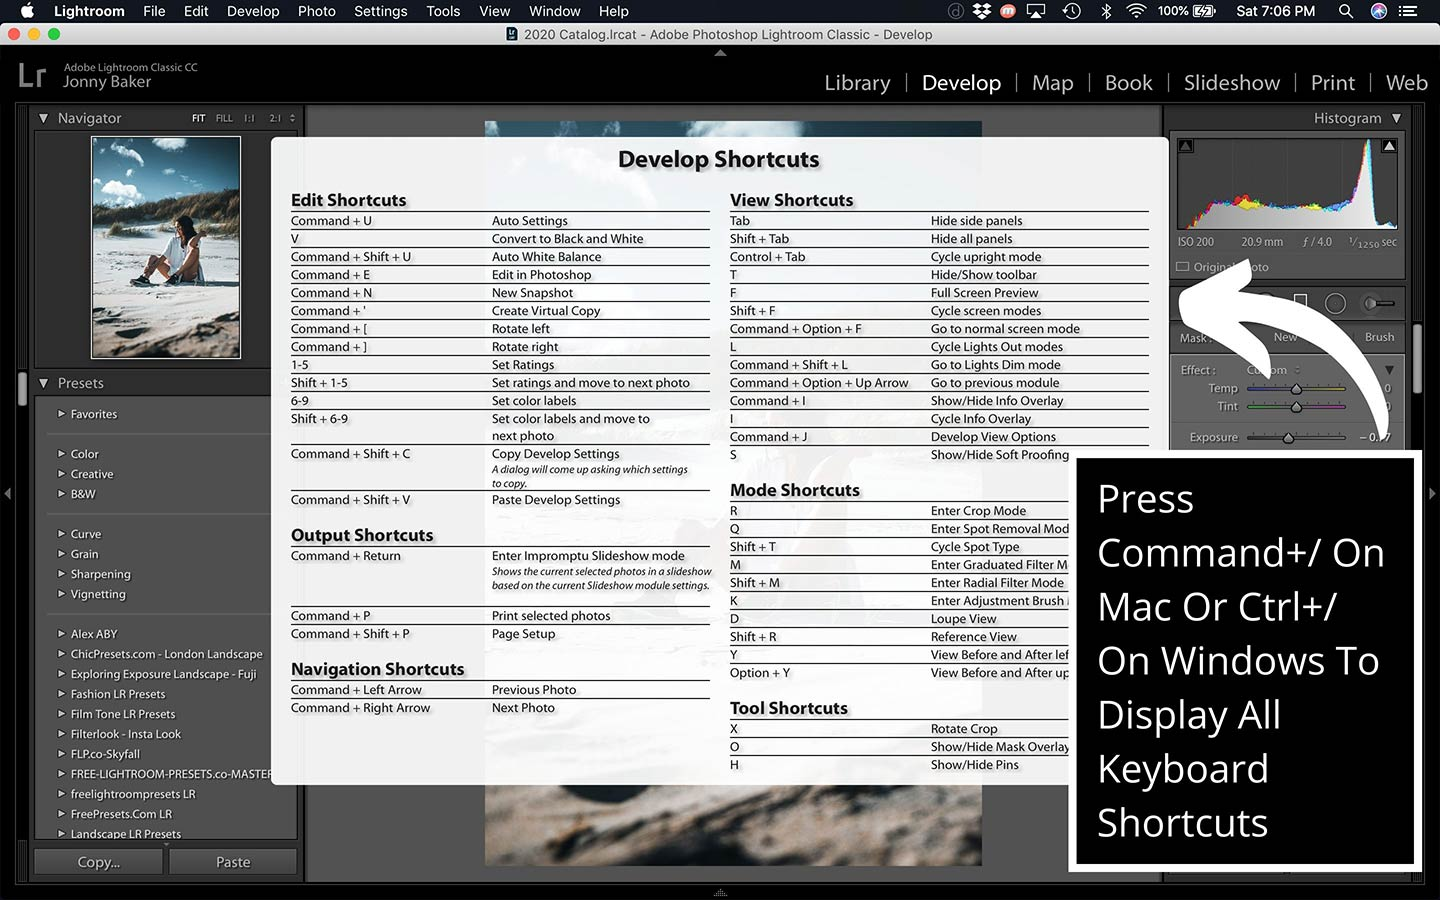 This printscreen from the desktop program shows how you can display all the keyboard shortcuts easily.